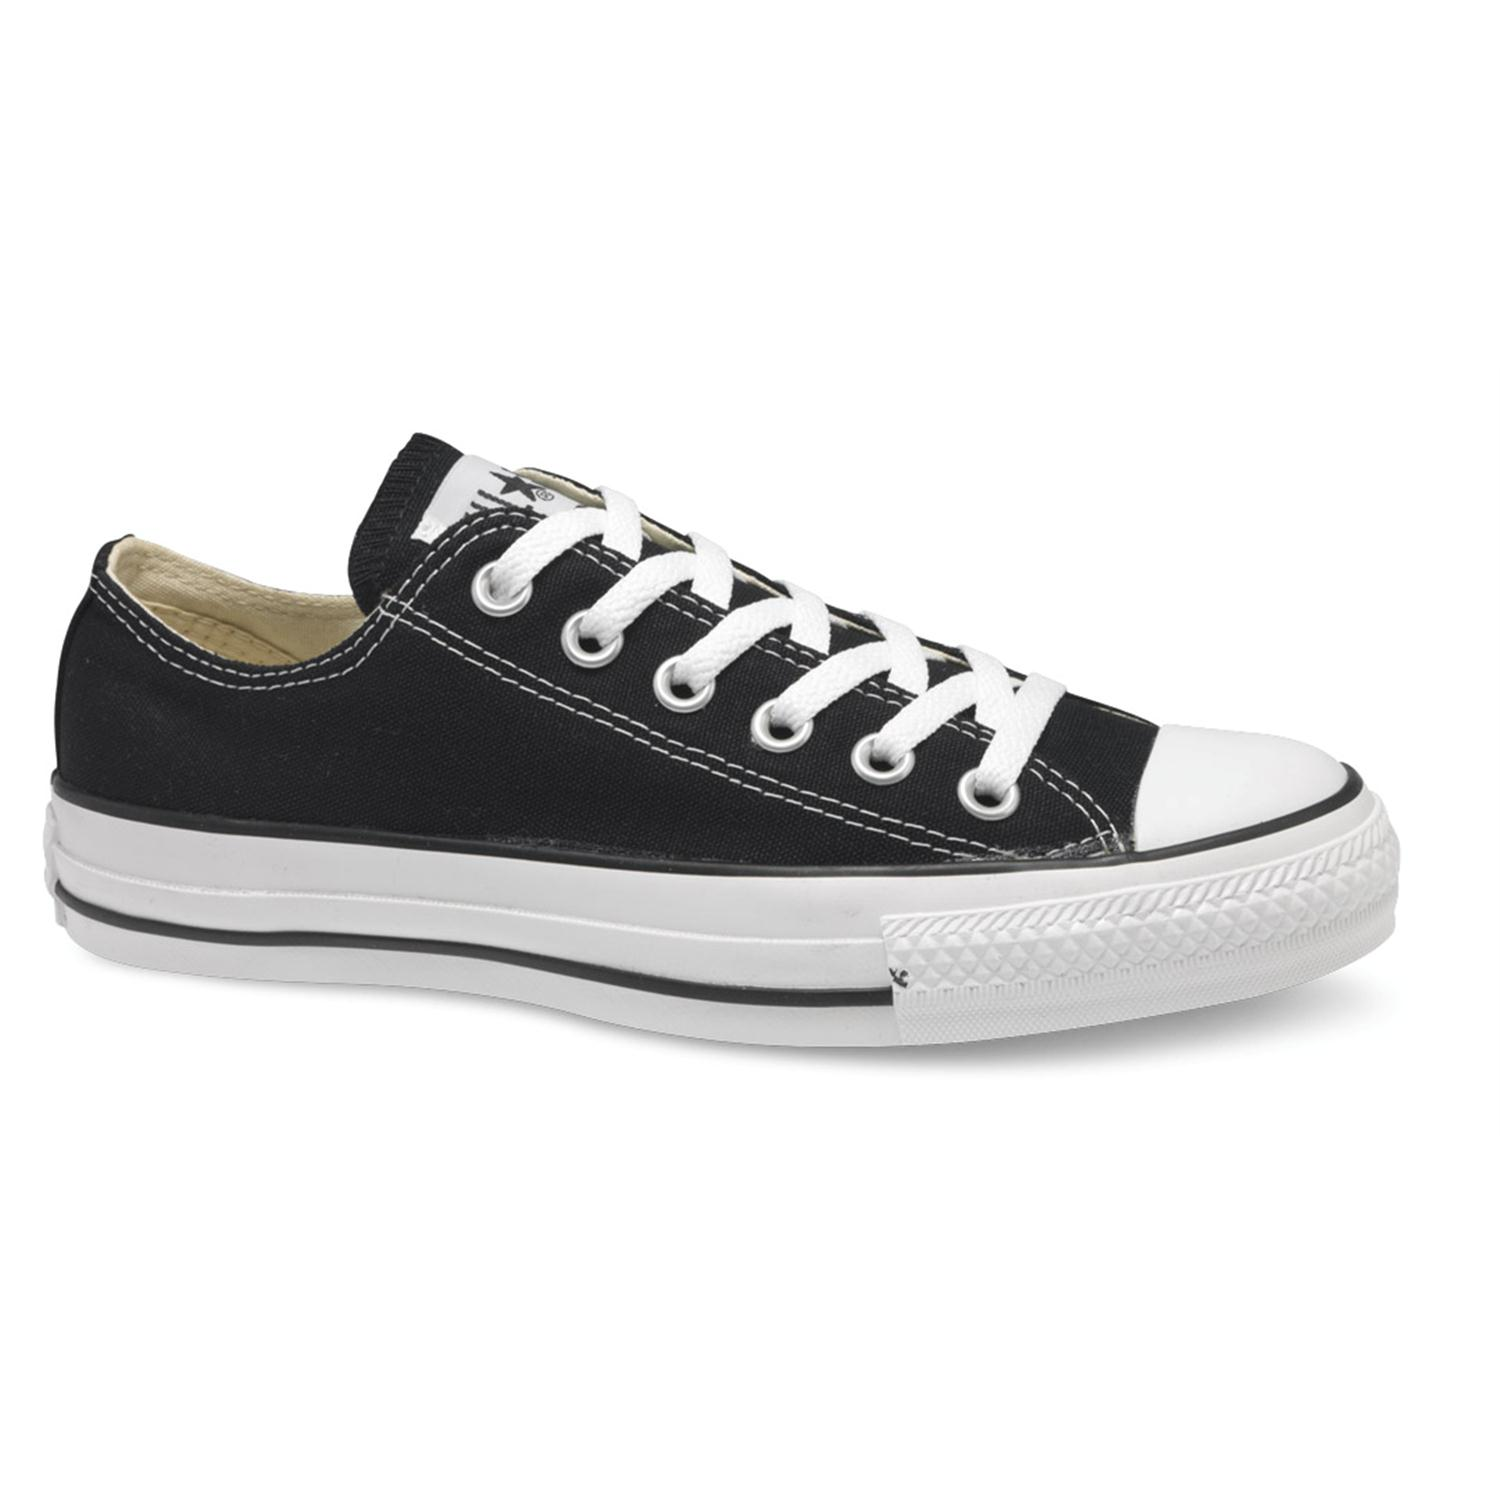 Converse Chuck Taylor All Star Low Top Shoes